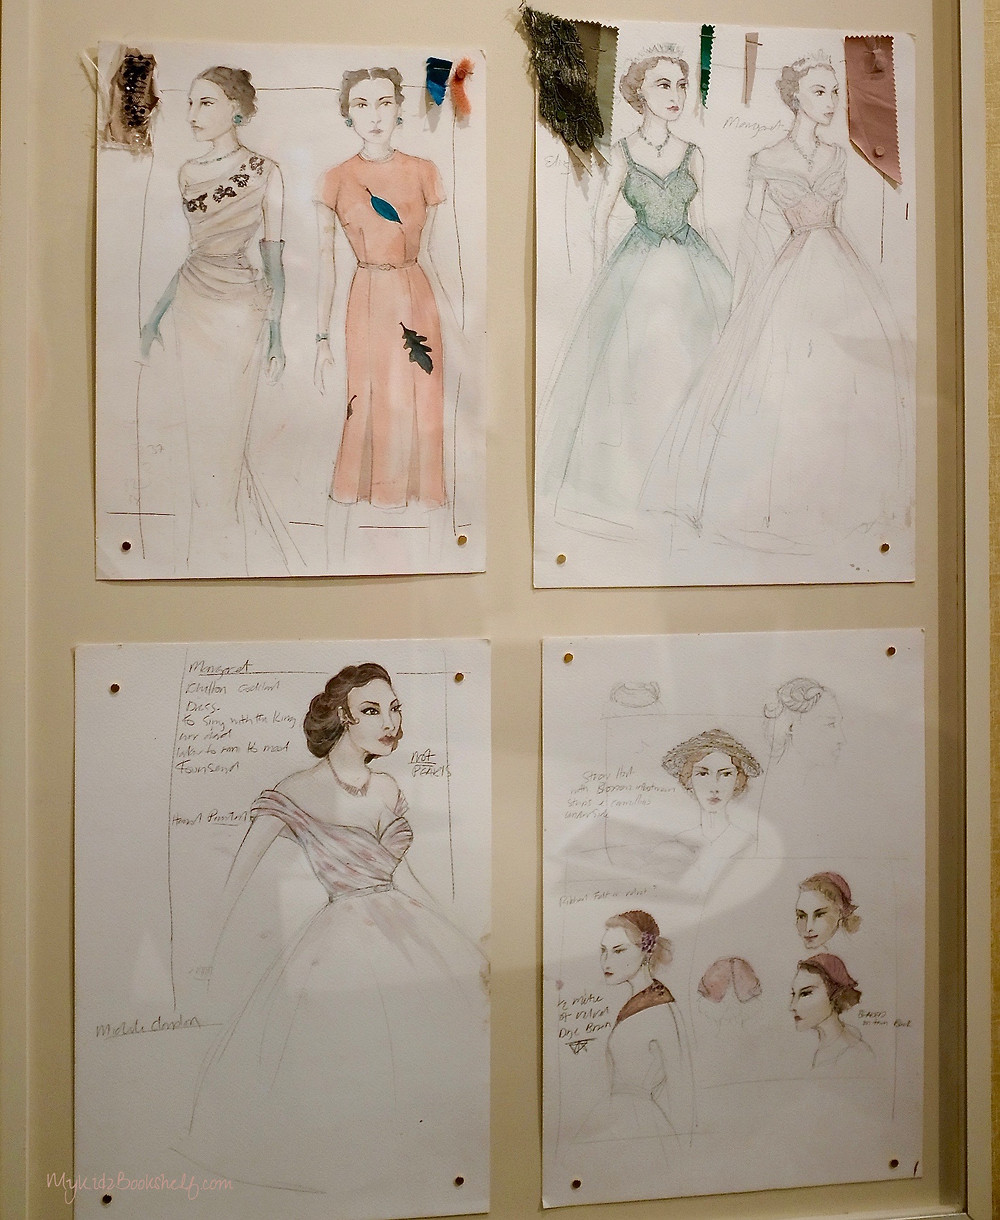 pictPicture-of-sketches-of-costumes-for-Netflix-original-series-The-Crown